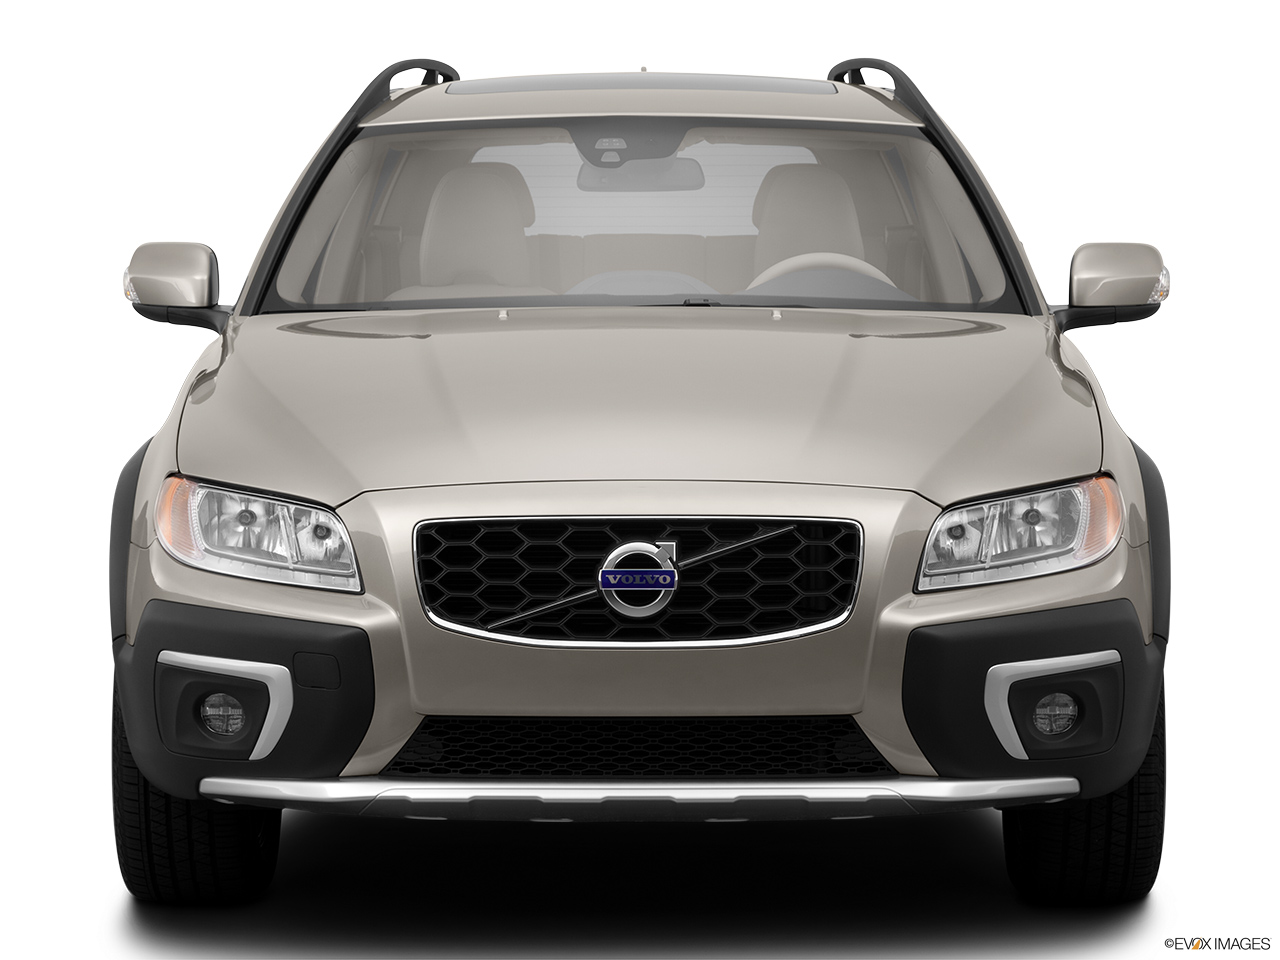 2014 Volvo XC70 3.2 AWD Premier Plus Low/wide front.